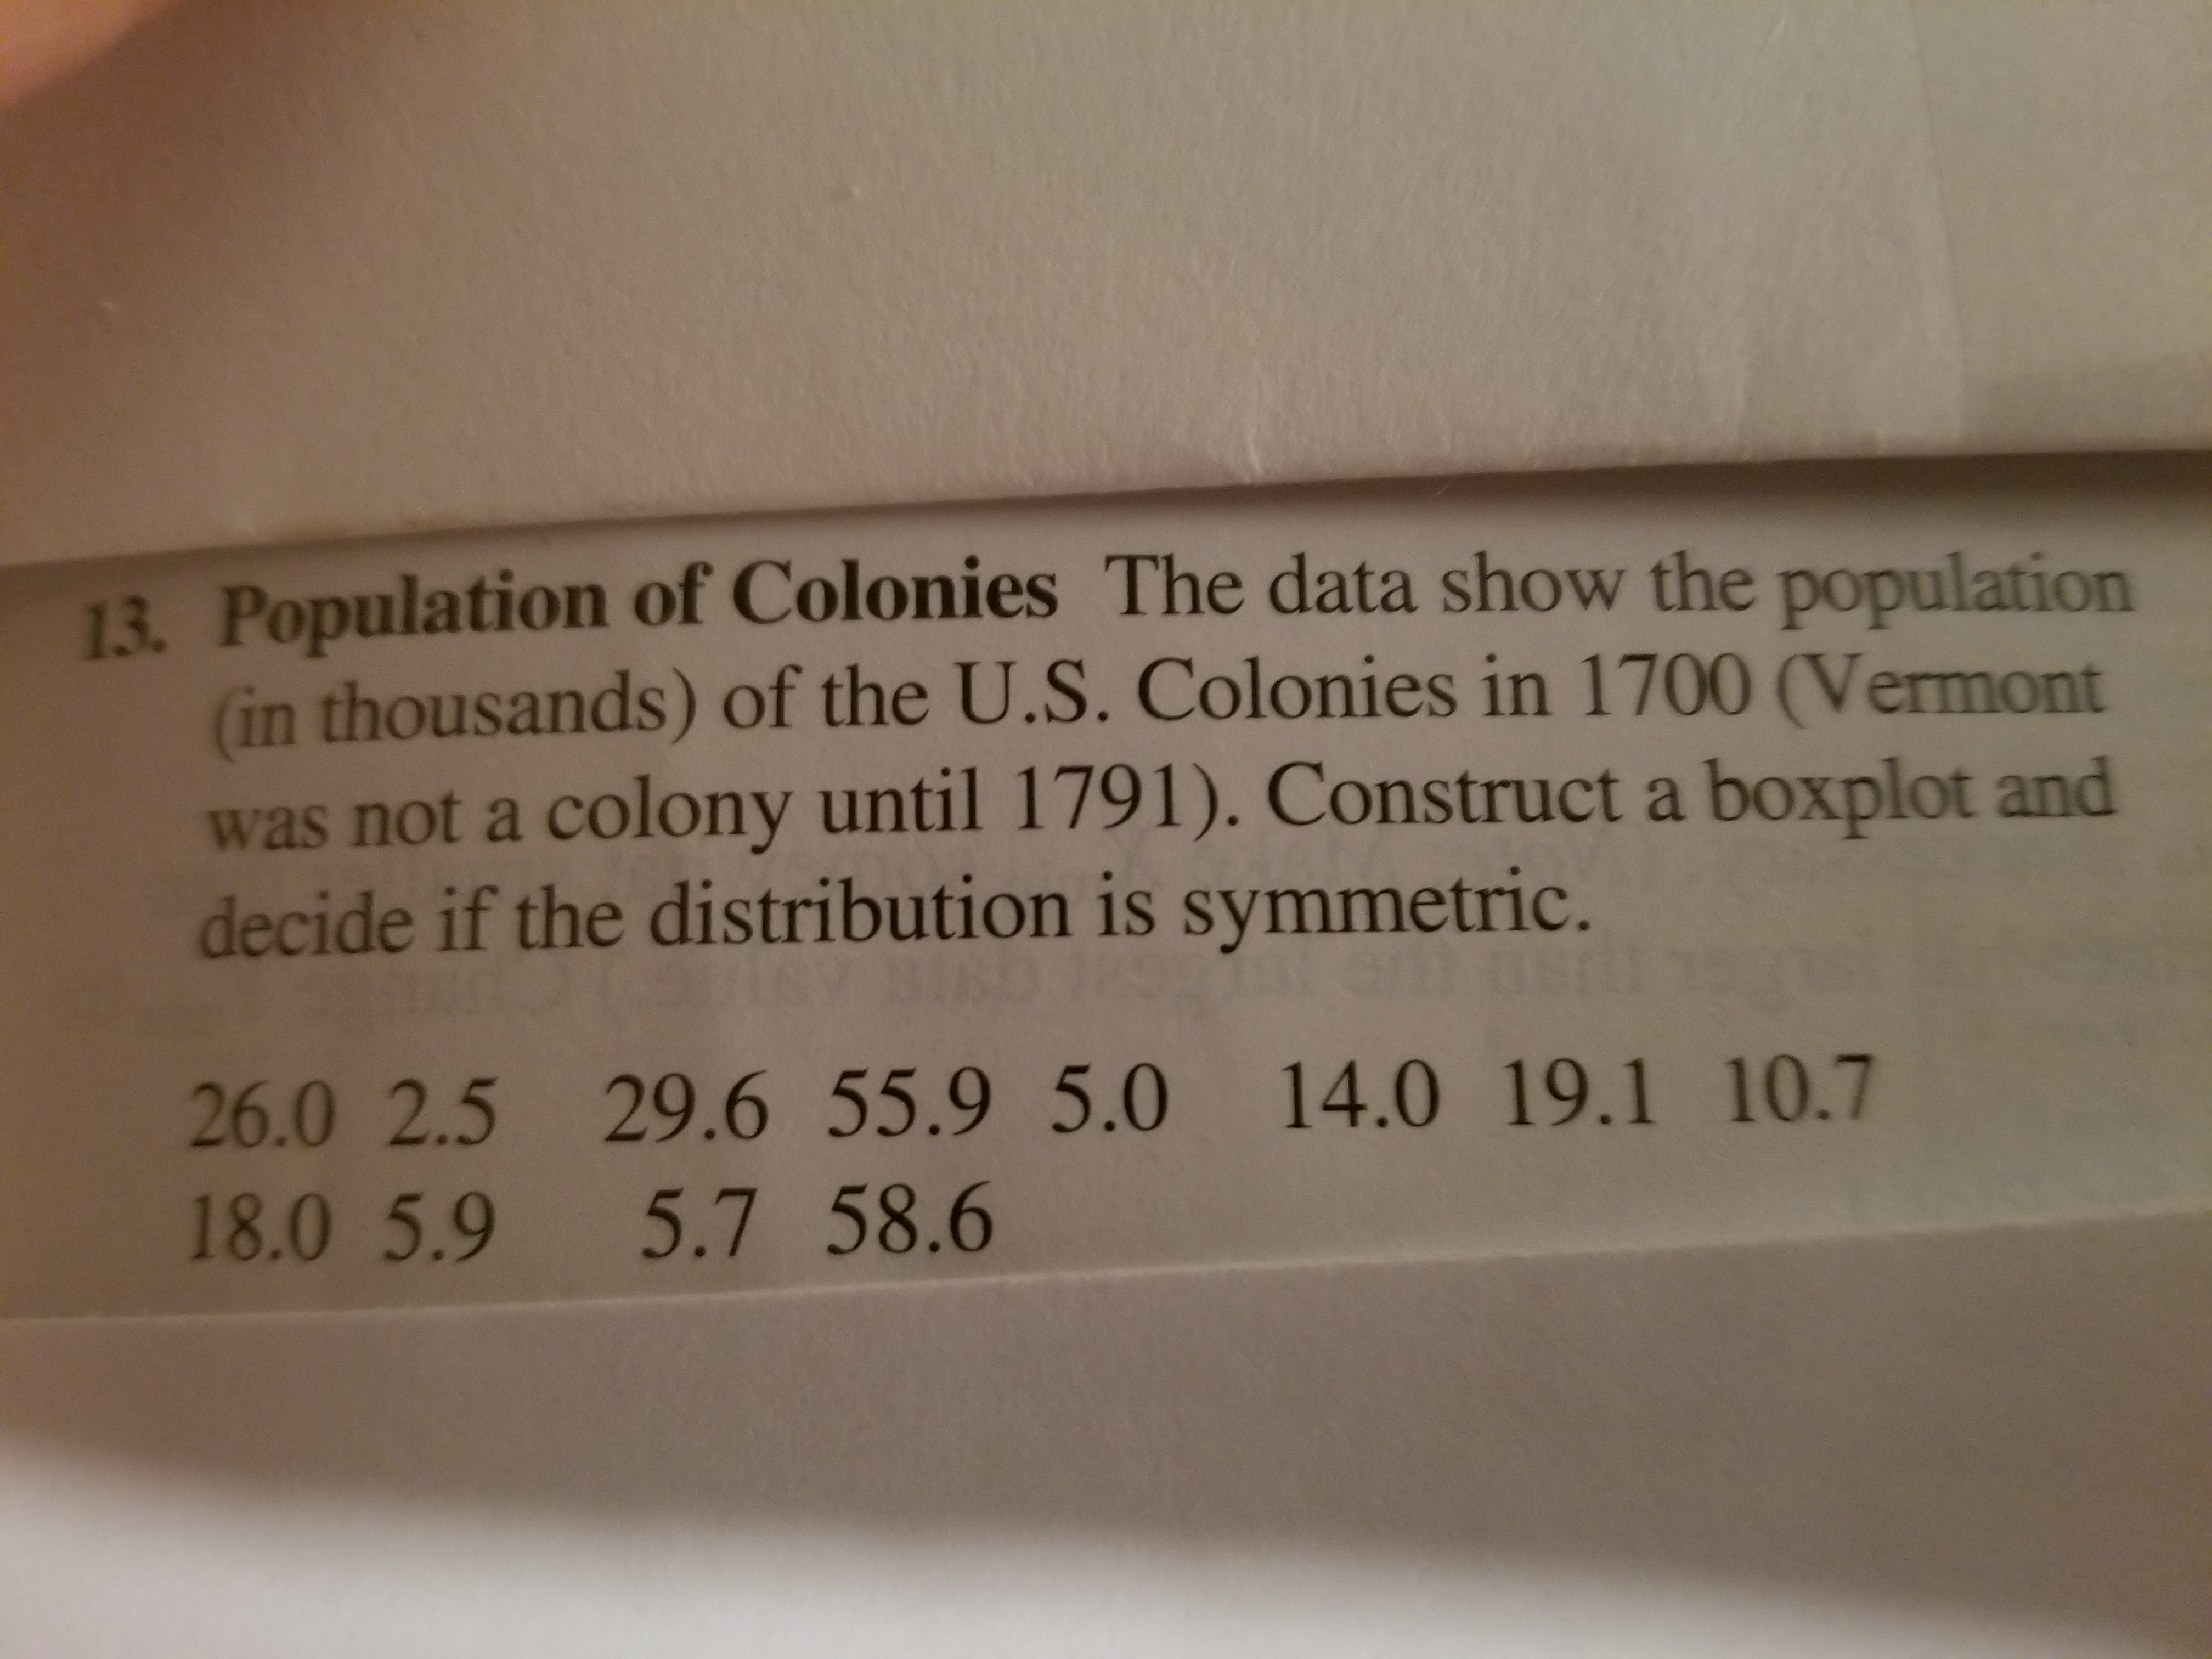 13. Population of Colonies The data show the population (in thousands) of the U.S. Colonies in 1700 (Vermont was not a colony until 1791). Construct a boxplot and decide if the distribution is symmetric. 26.0 2.5 29.6 55.9 5.0 14.0 19.1 10.7 18.0 5.9 5.7 58.6